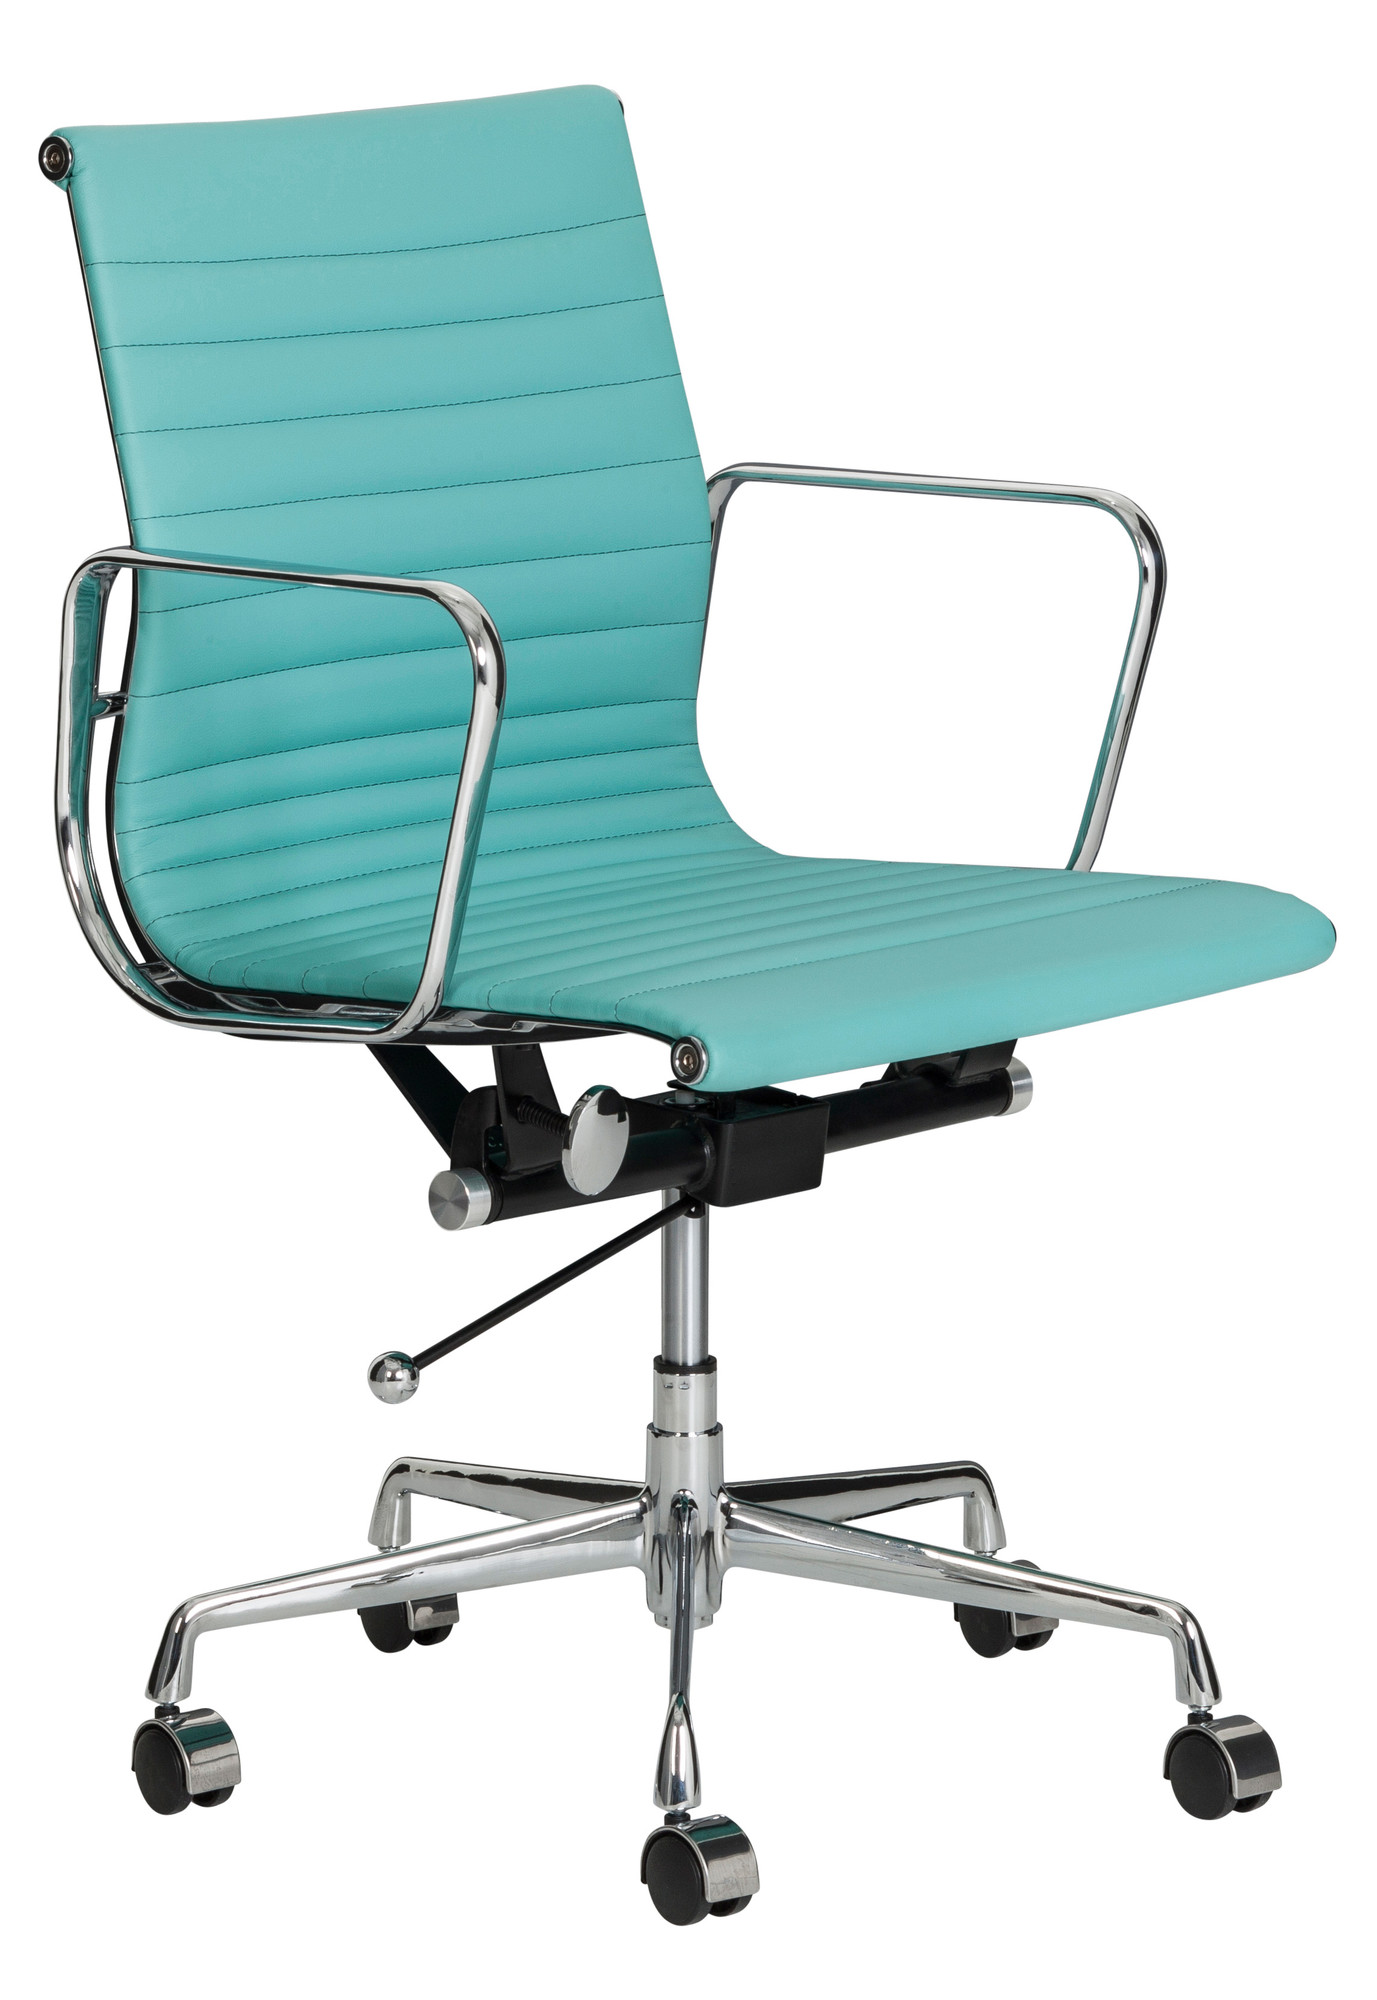 new eames classic replica management office chair ebay